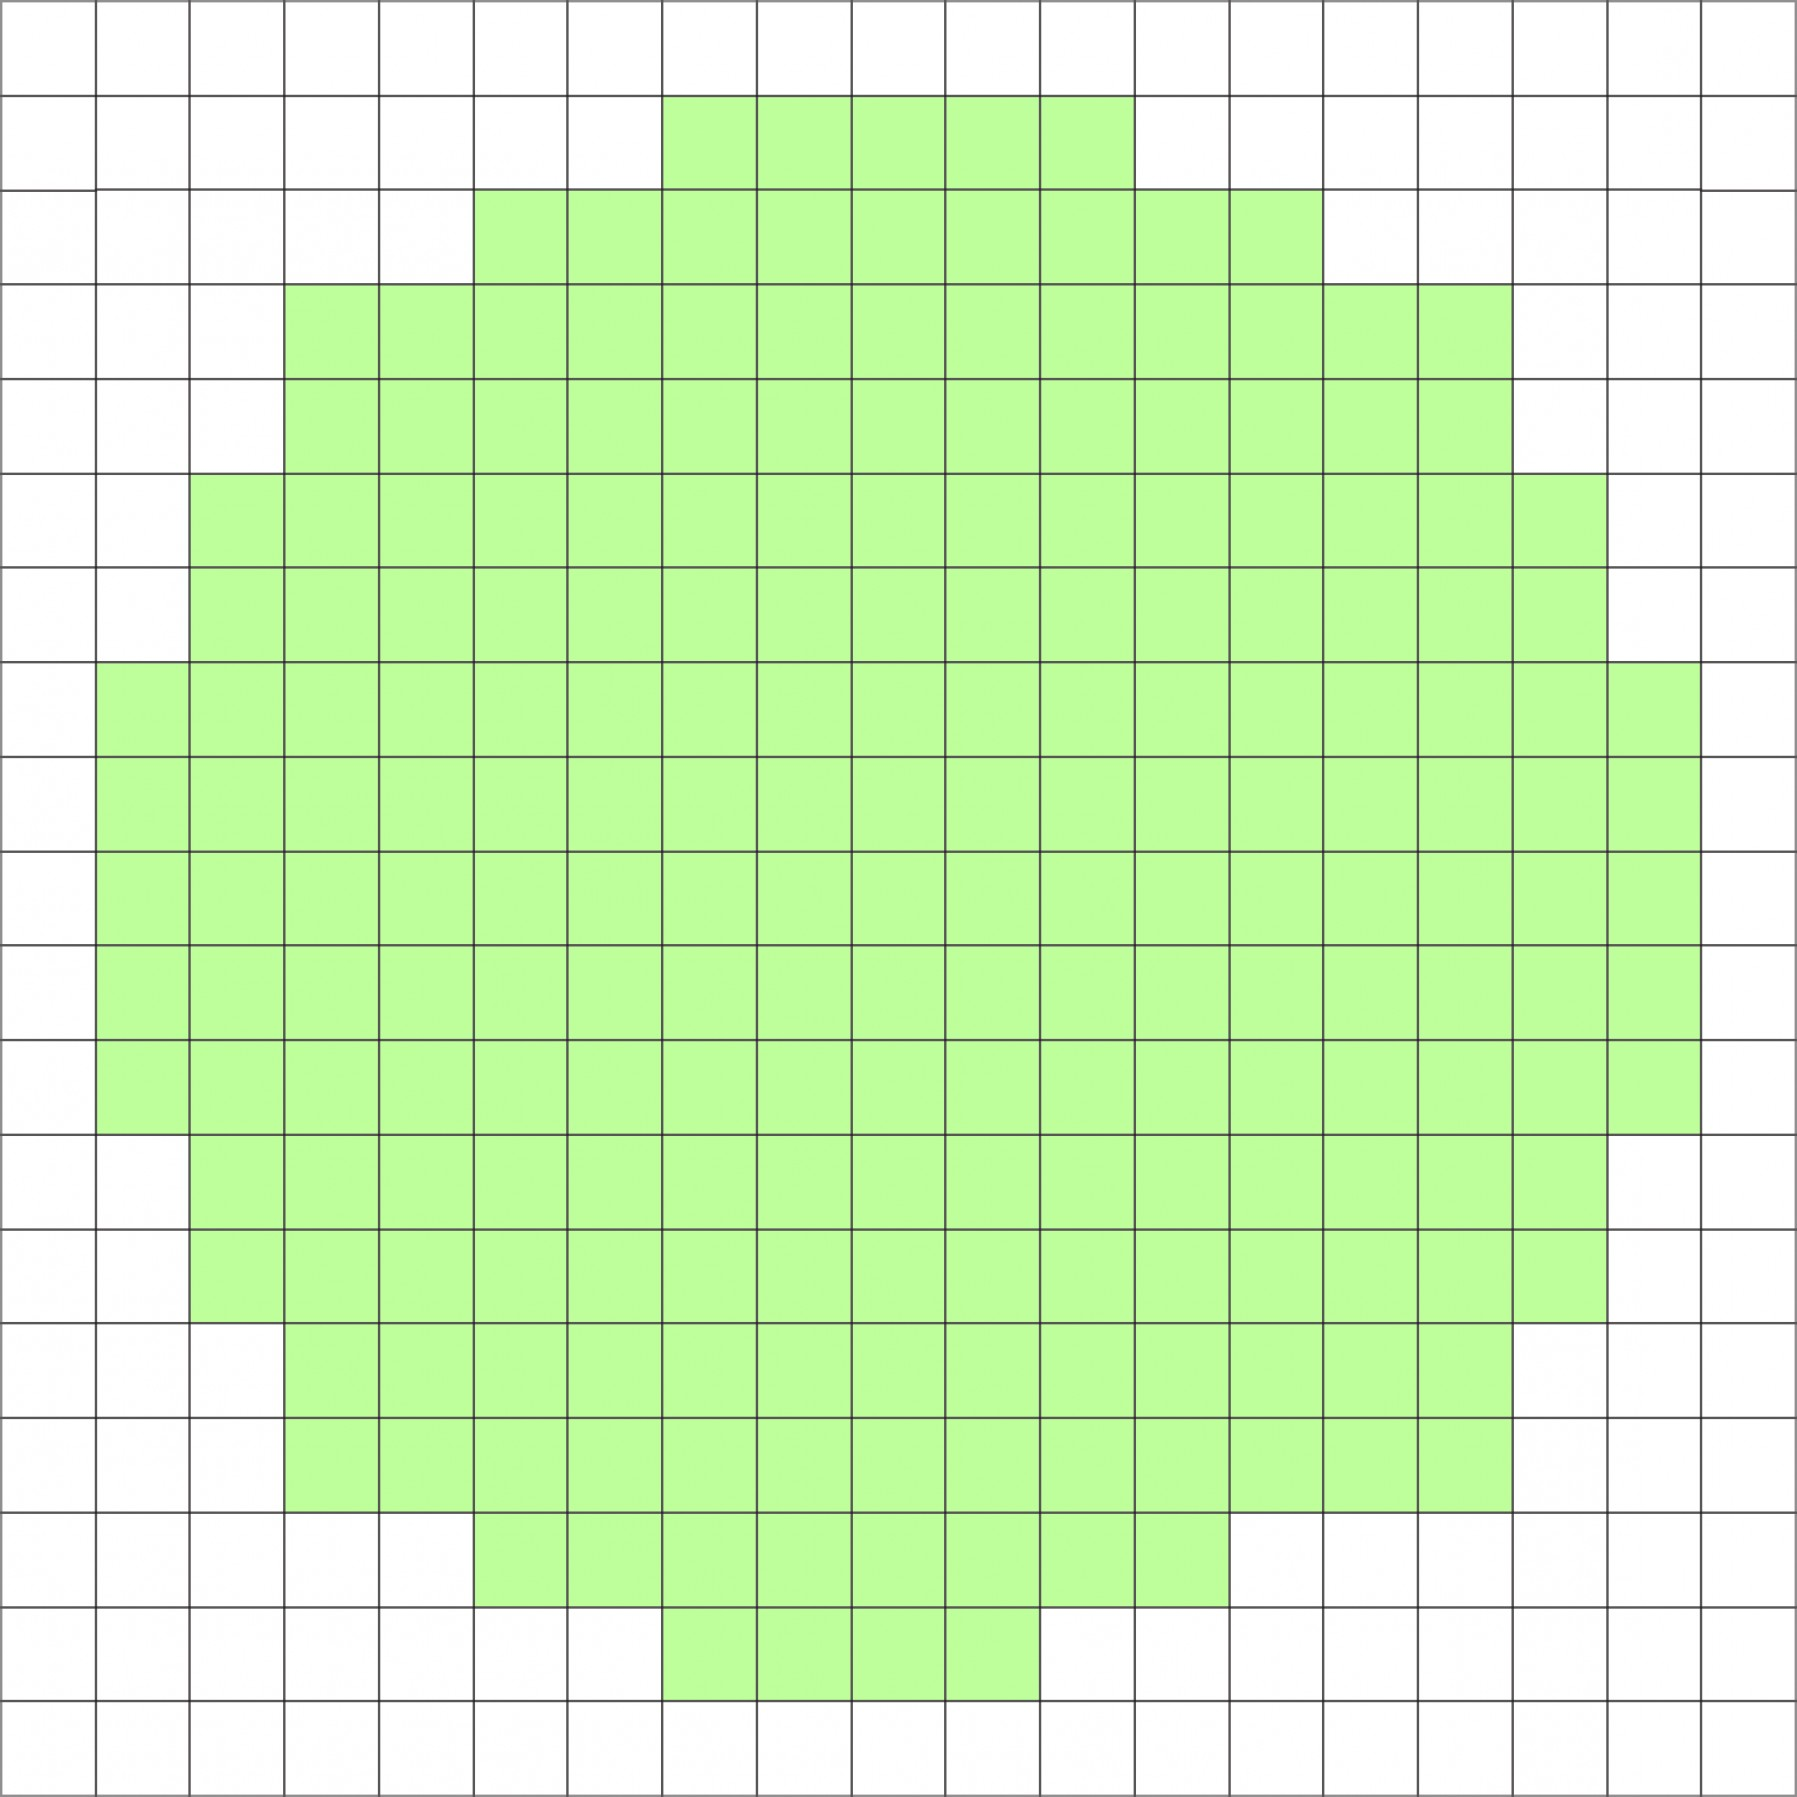 Vector Vs Rastor: Vector Vs Raster Is There Any Reason To Include Larger Vector Images Into A